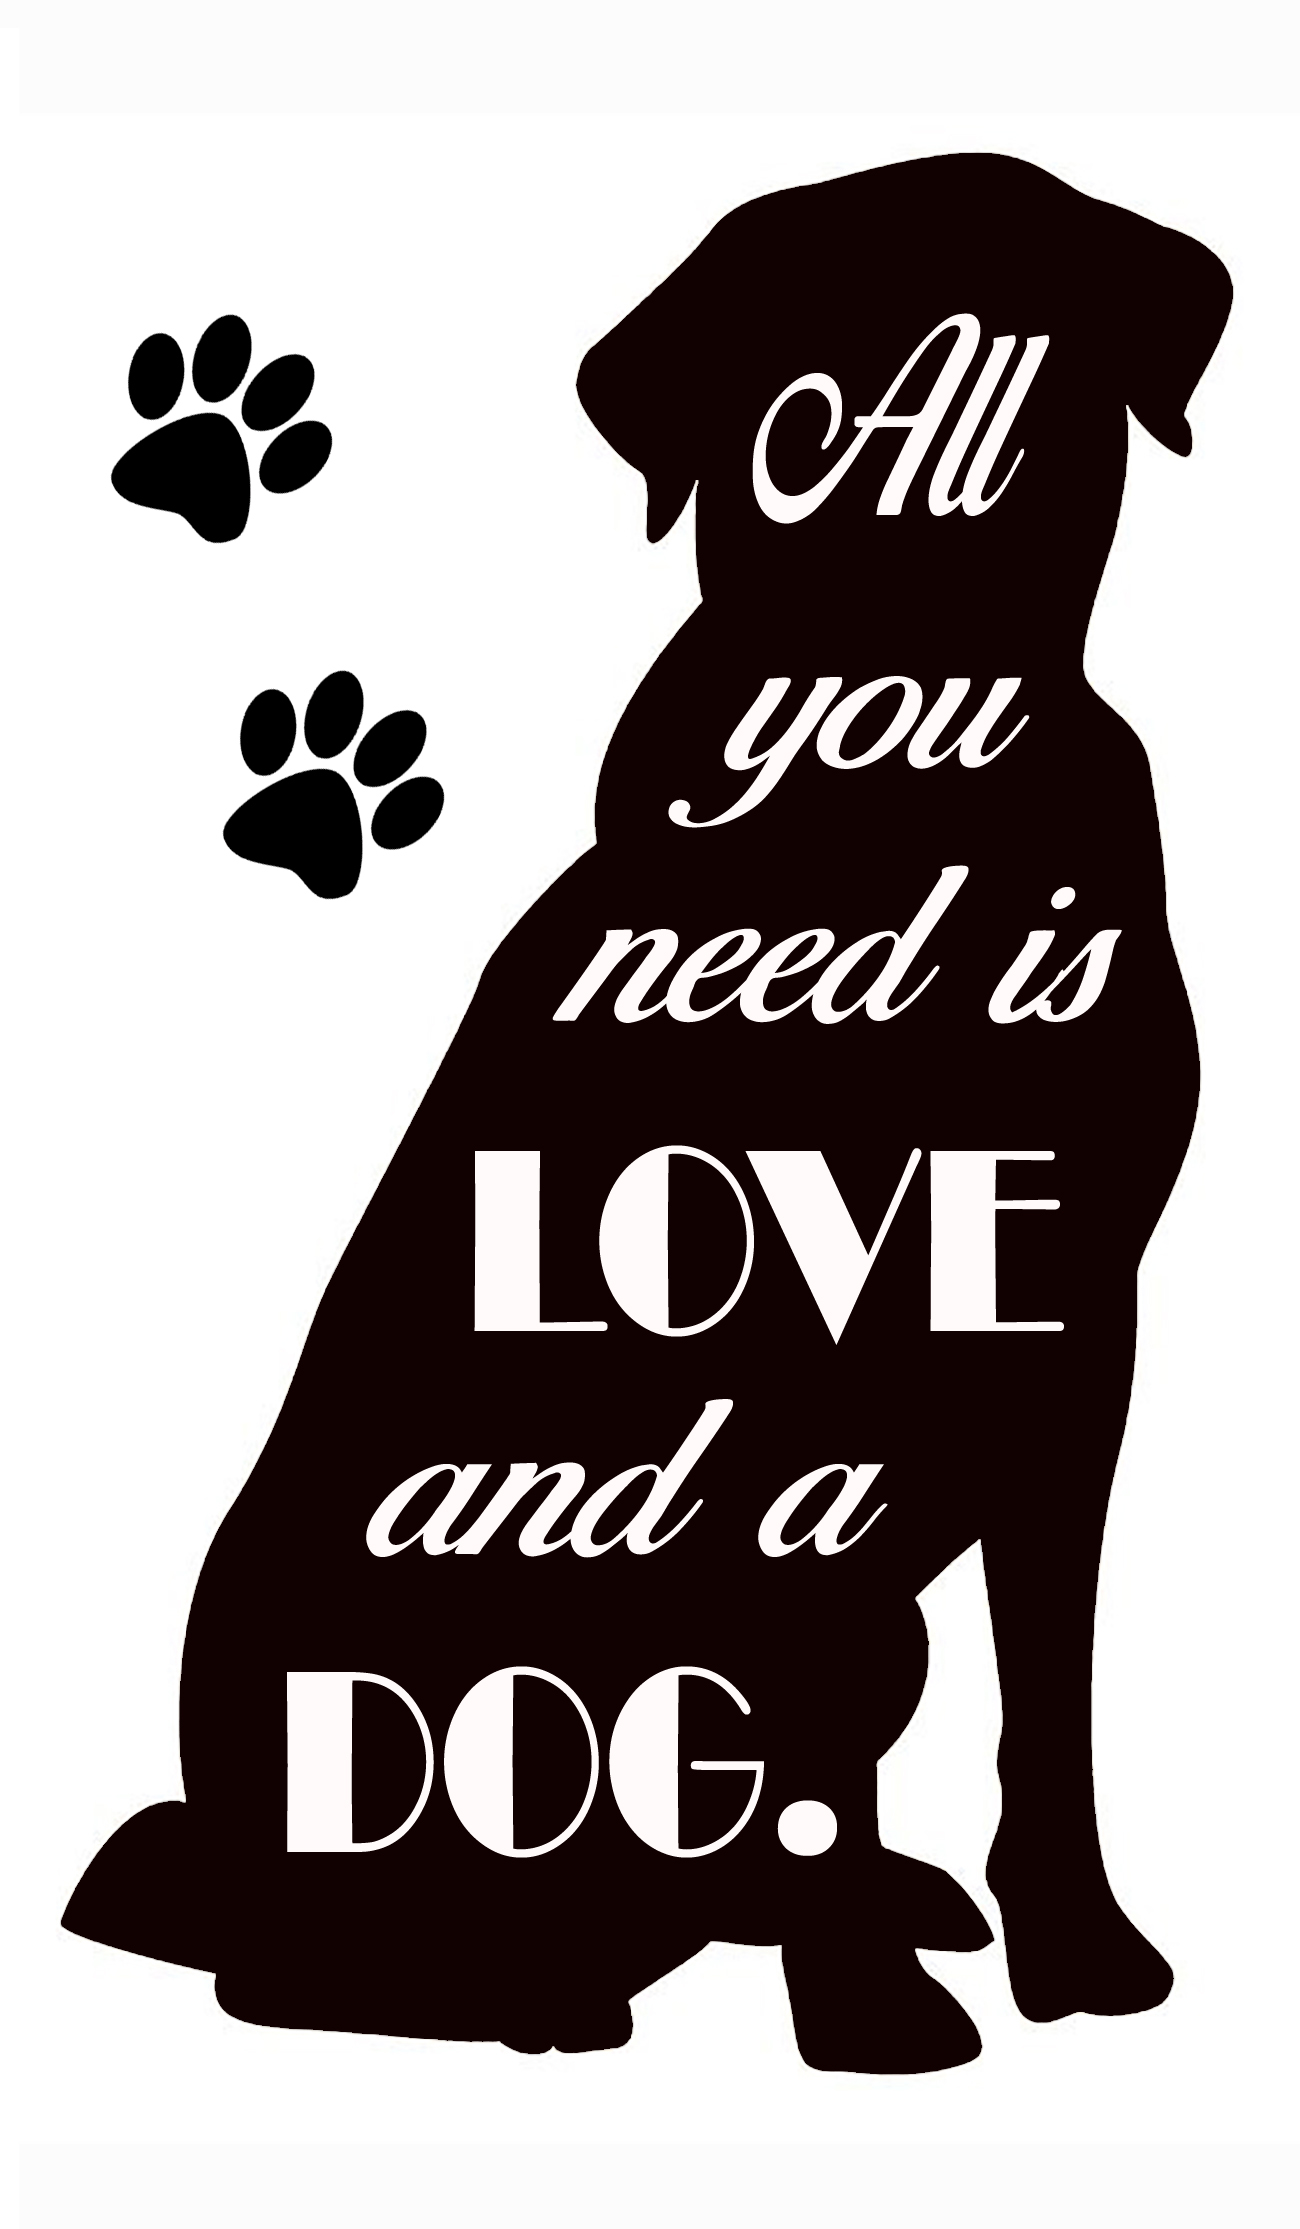 PET6: All you need is Love and a Dog